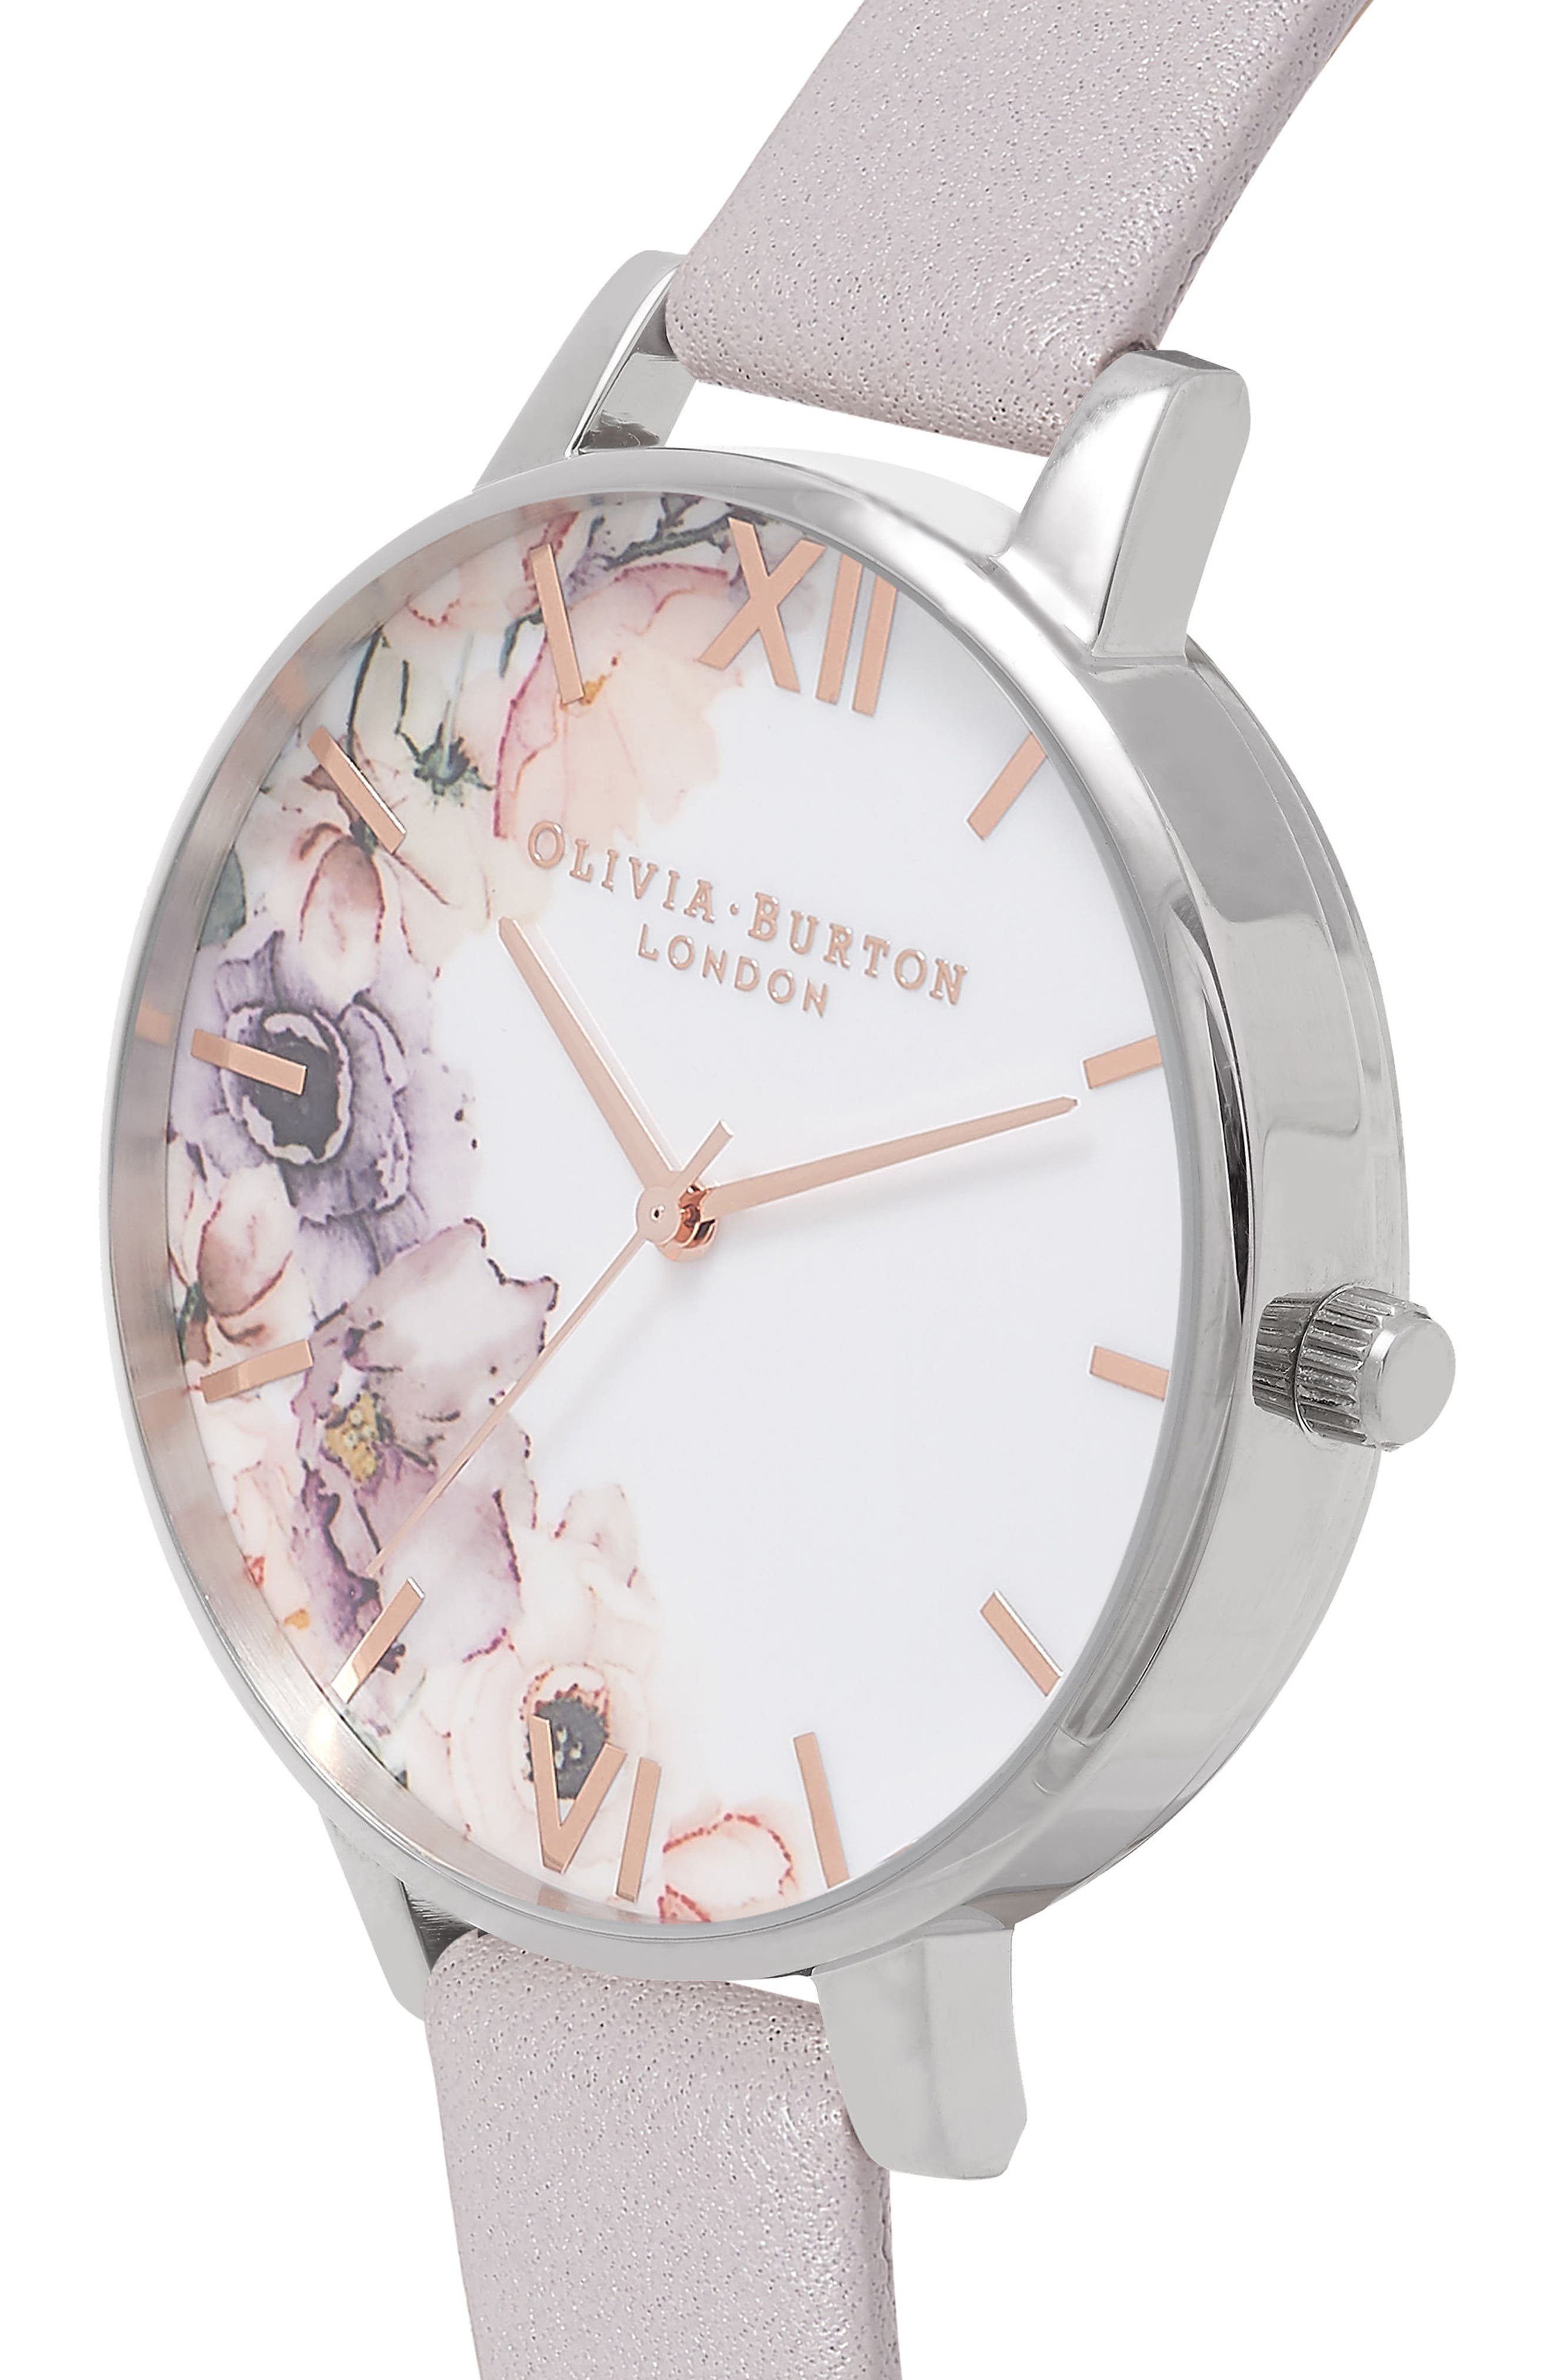 OLIVIA BURTON, Watercolour Florals Leather Strap Watch, 38mm, Alternate thumbnail 6, color, GREY/ WHITE/ FLORAL/ SILVER